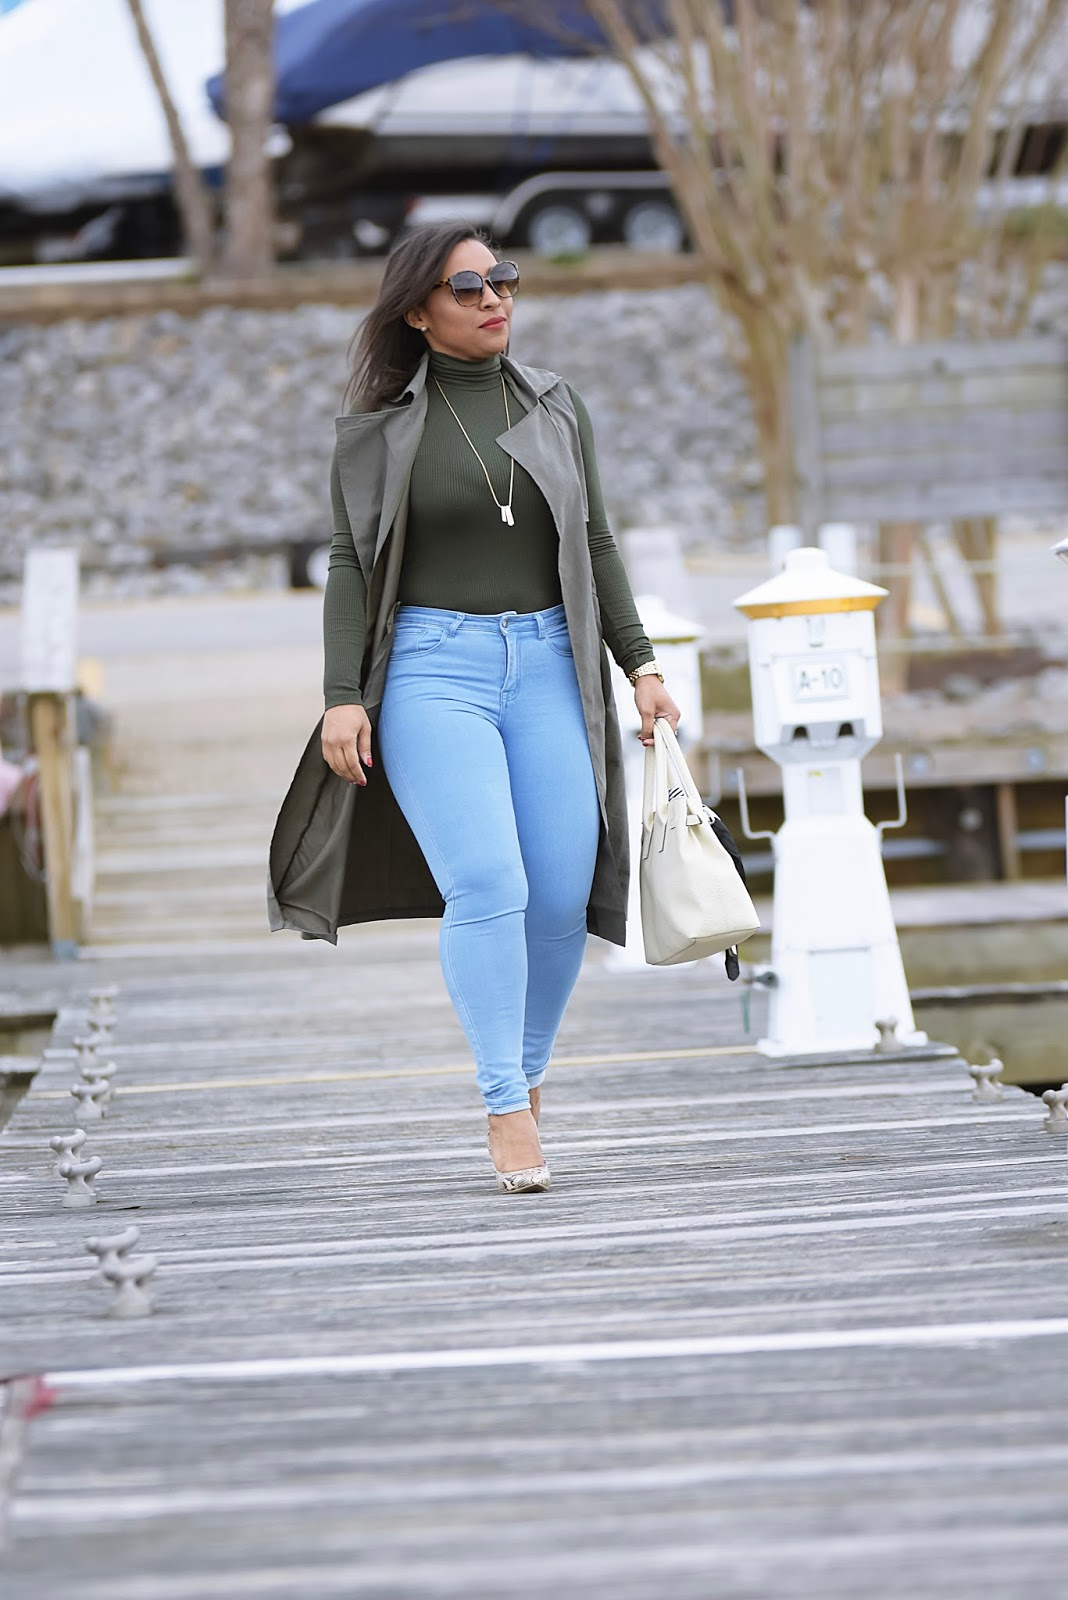 Amiclubwear, green vest, sleevless trench, pier, virginia pier, woodbridge virginia, high waist denim